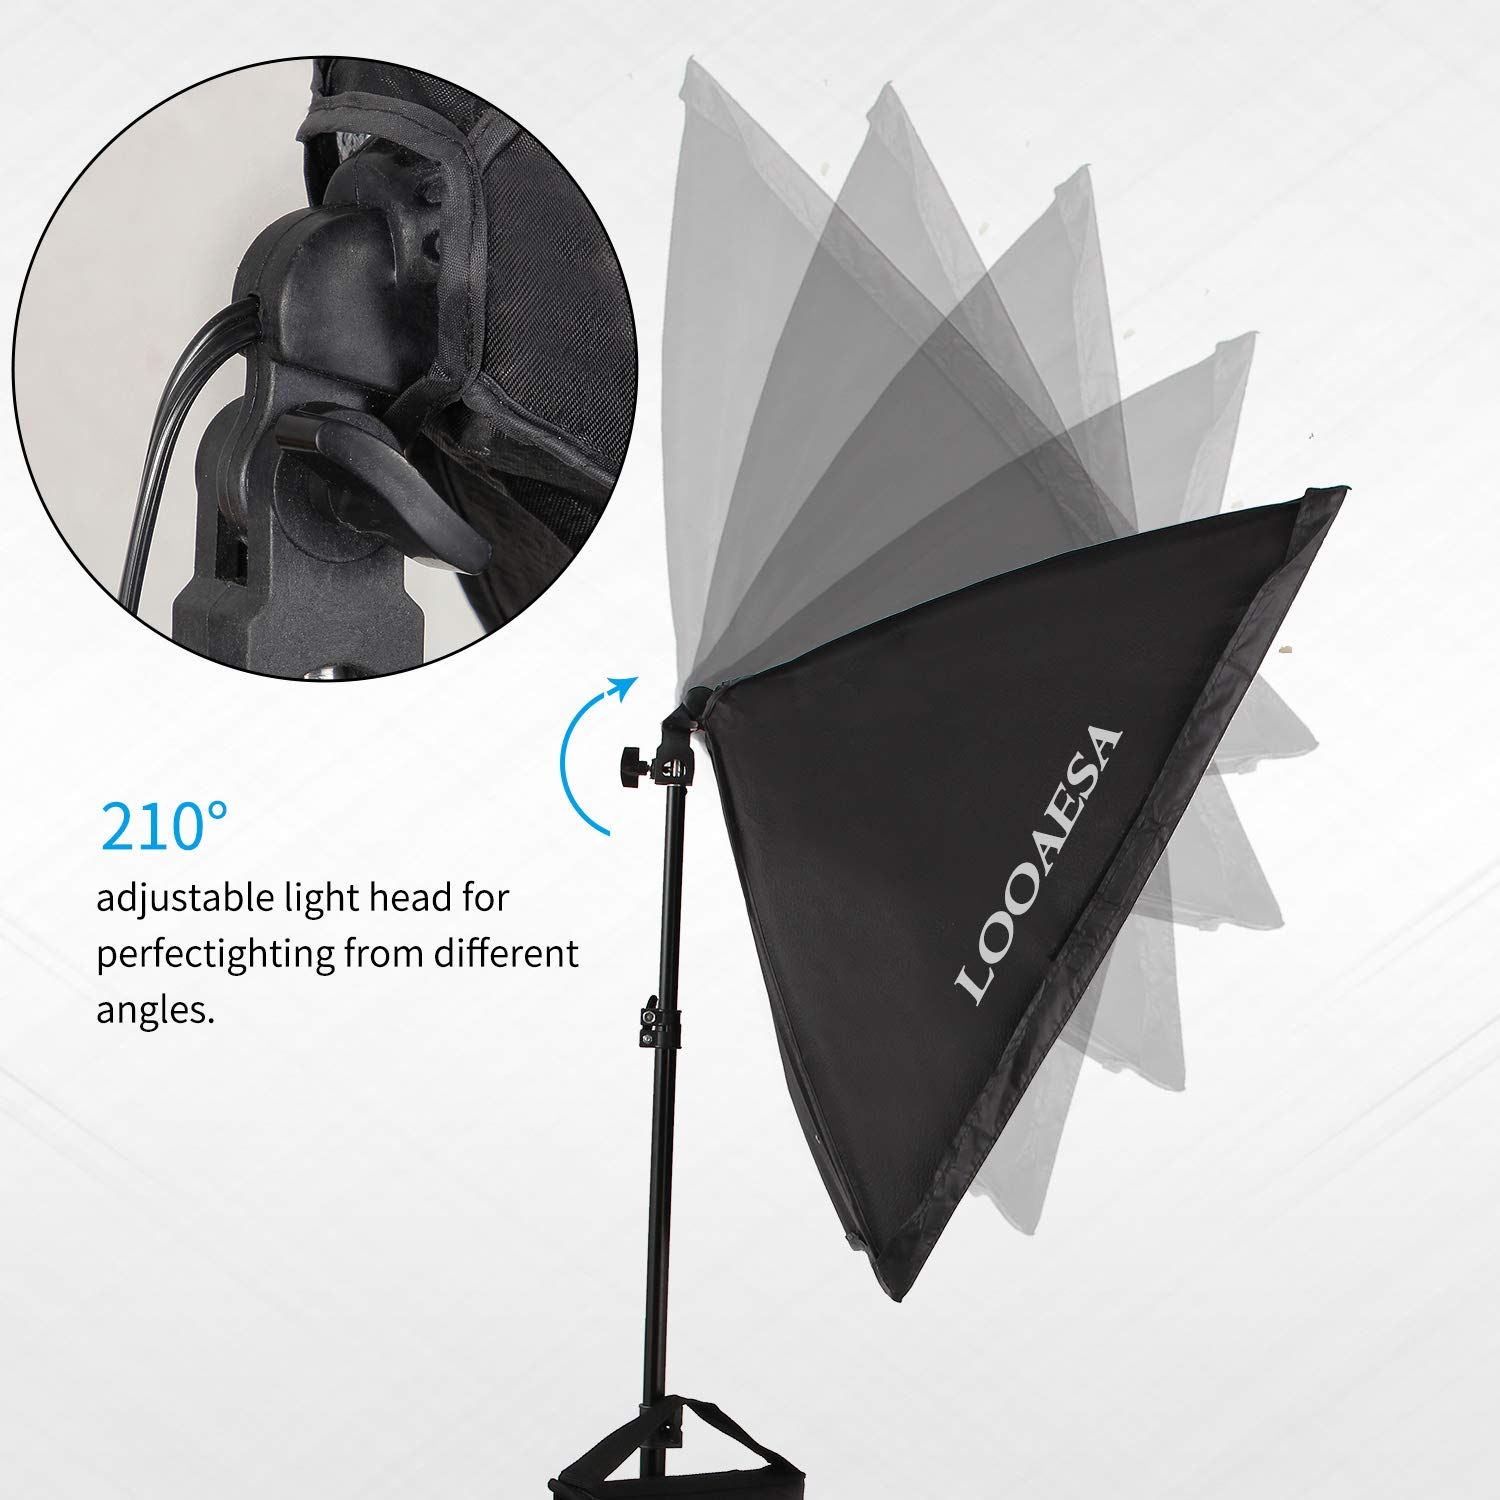 1350W Photography Lighting Softbox Lighting Kit Continuous Photo Video Lighting System with Sandbag and 5500K Bulb 20''X28'' Professional Studio Lights Equipment for Youtube Filming Portraits by LOOAESA by LOOAESA (Image #2)